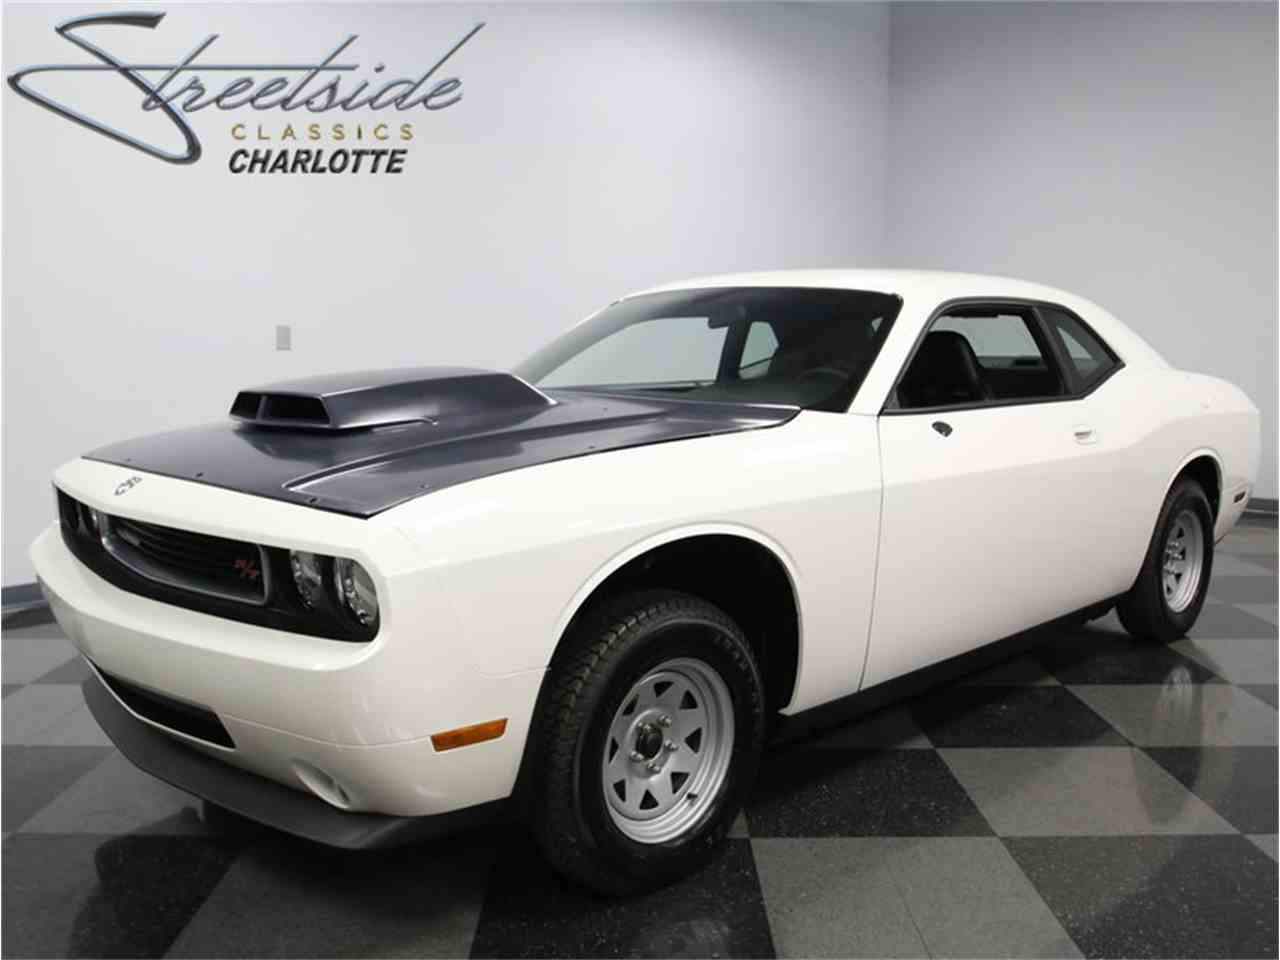 near sale nc in trail dodge north charlotte challenger indian image gallery carolina for cdjr